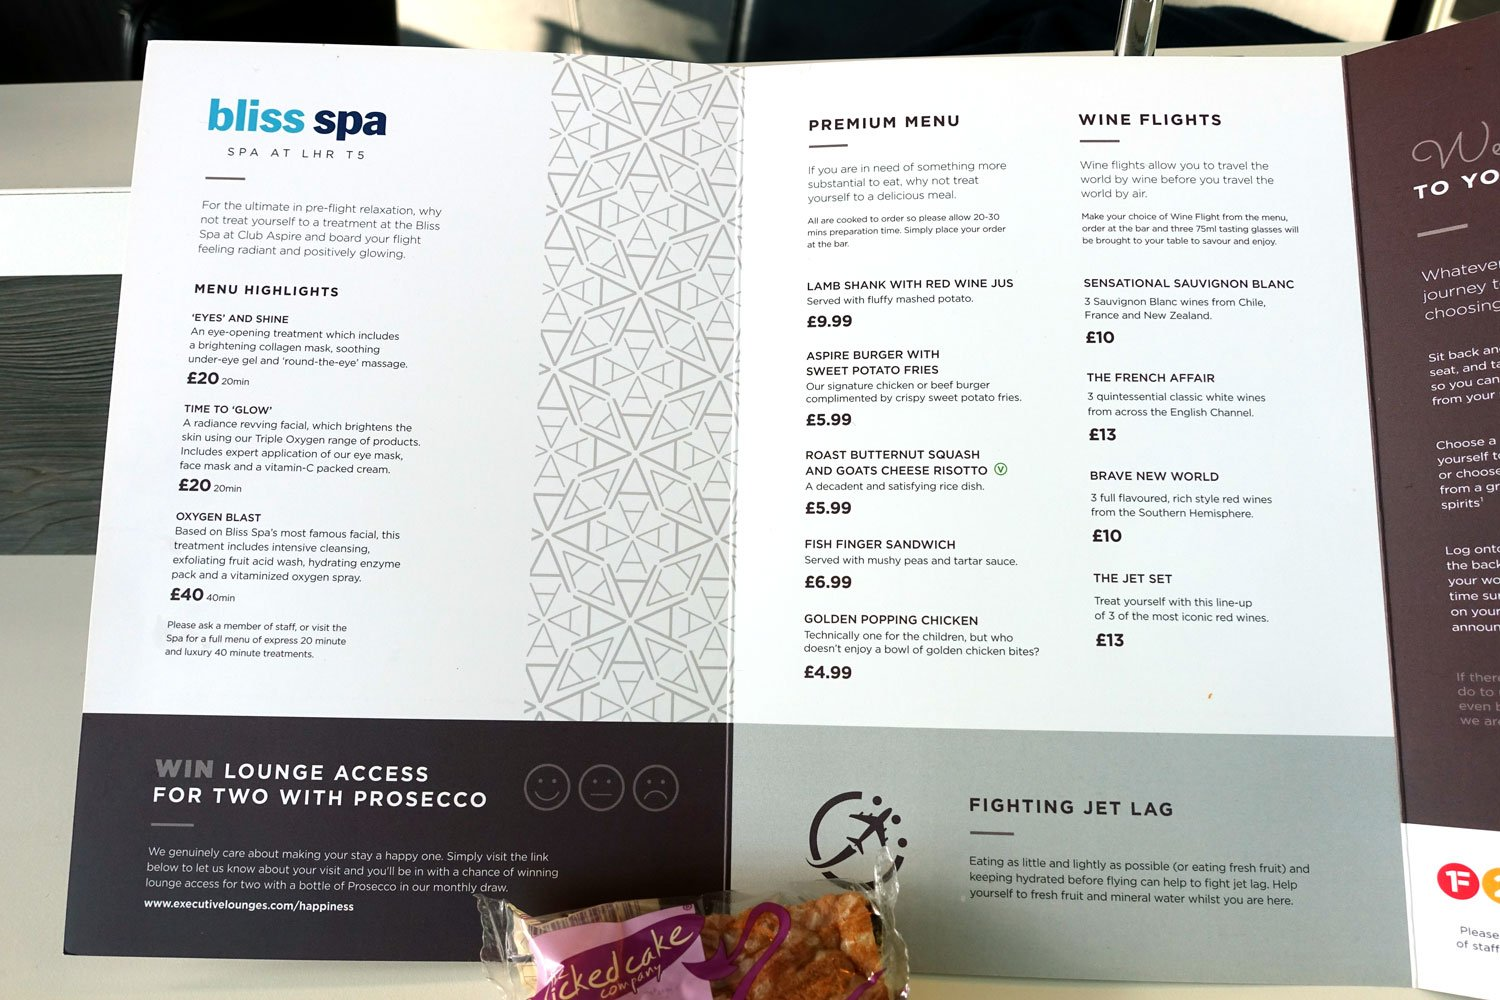 heathrow priority pass lounge - aspire lounge and spa menu